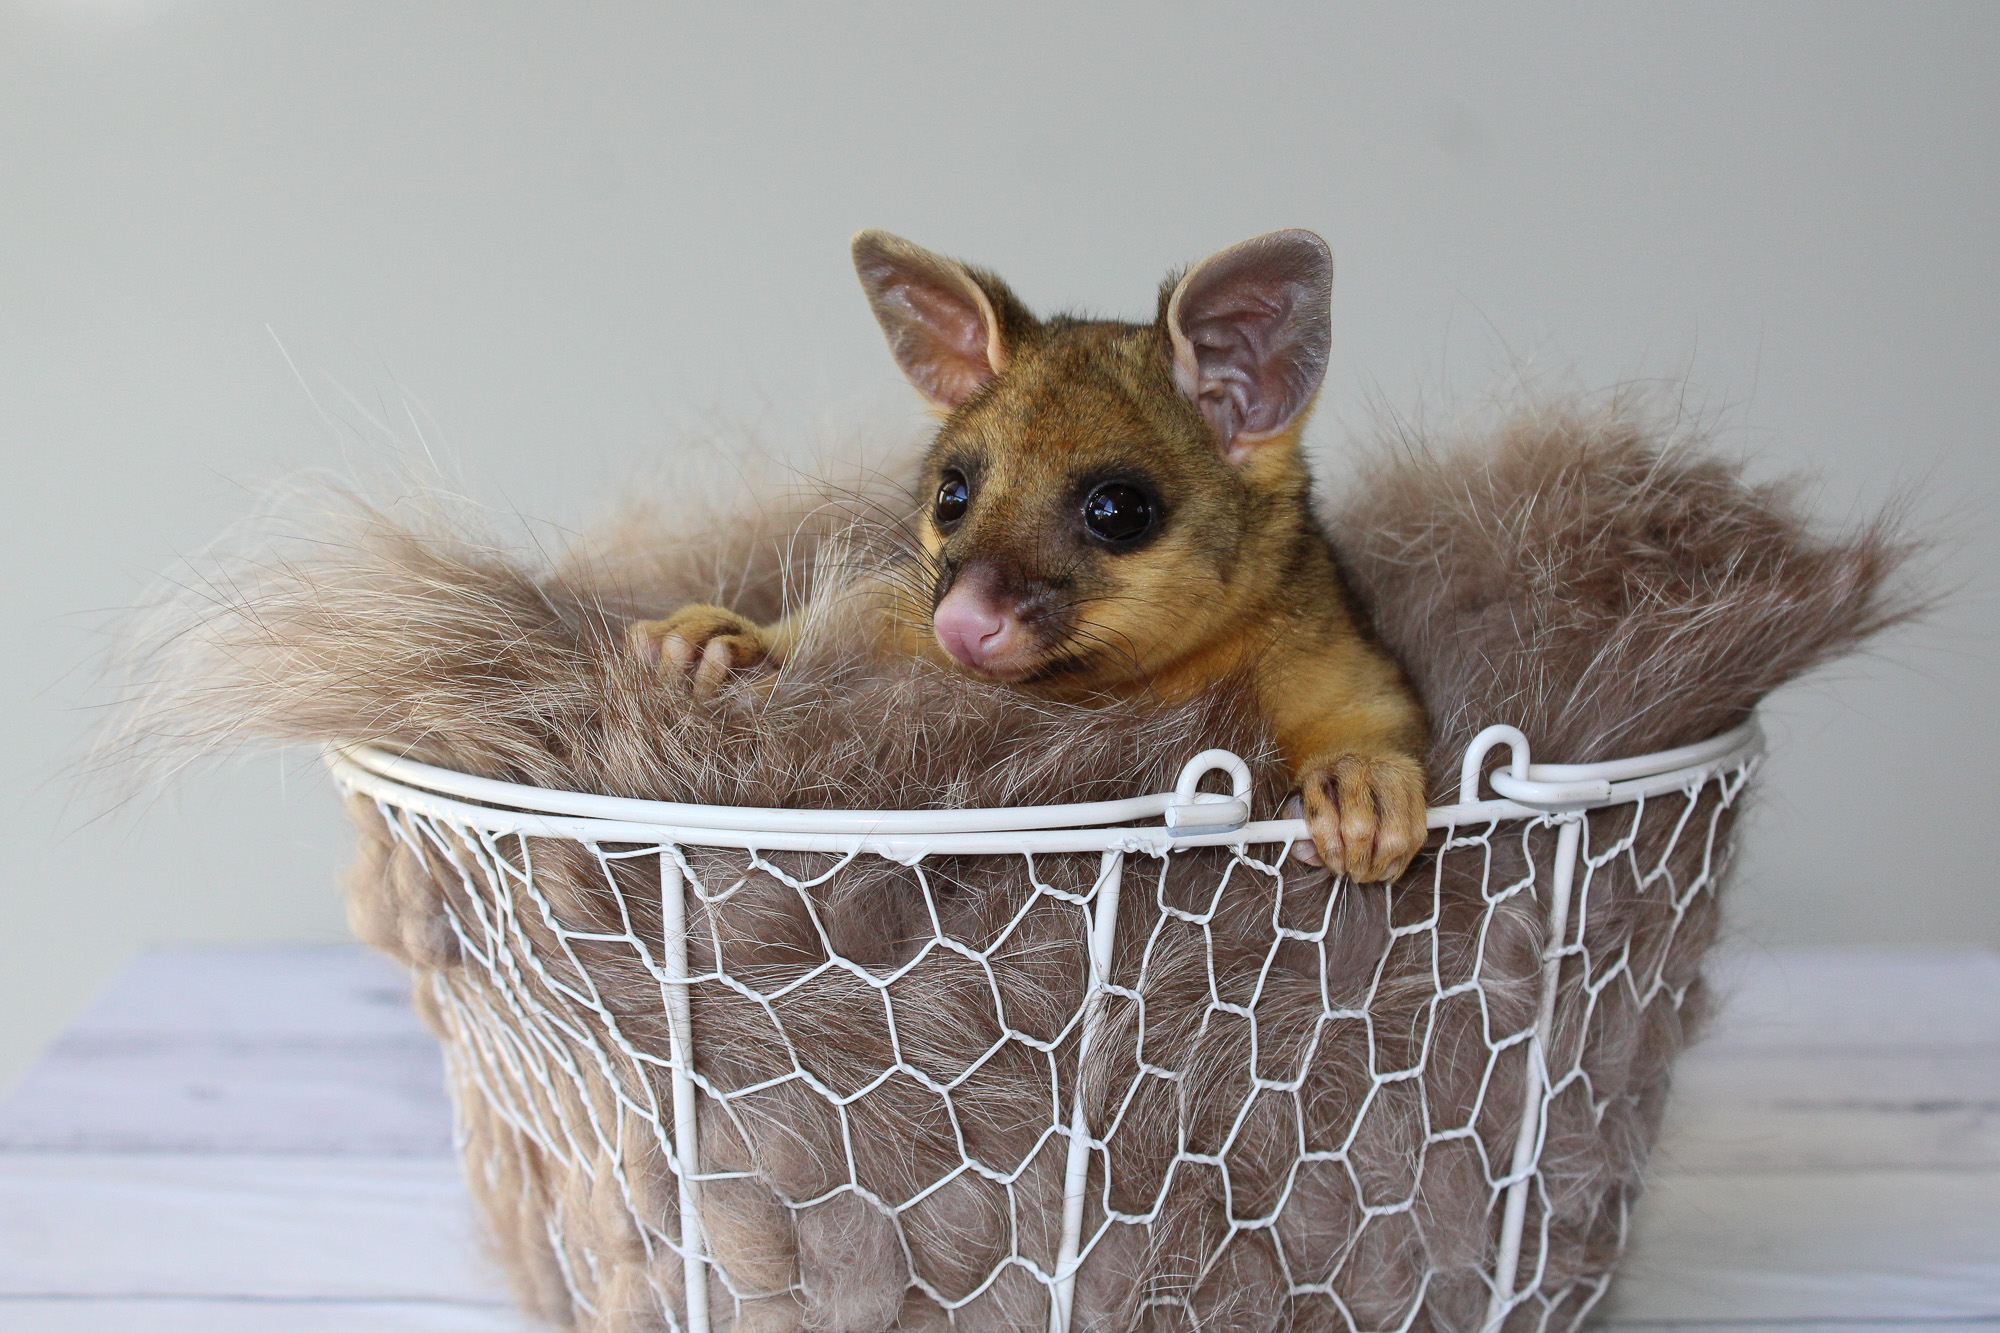 Ginger_brushtailpossum_Judi Gray Wildlife Qld Toowoomba.jpg